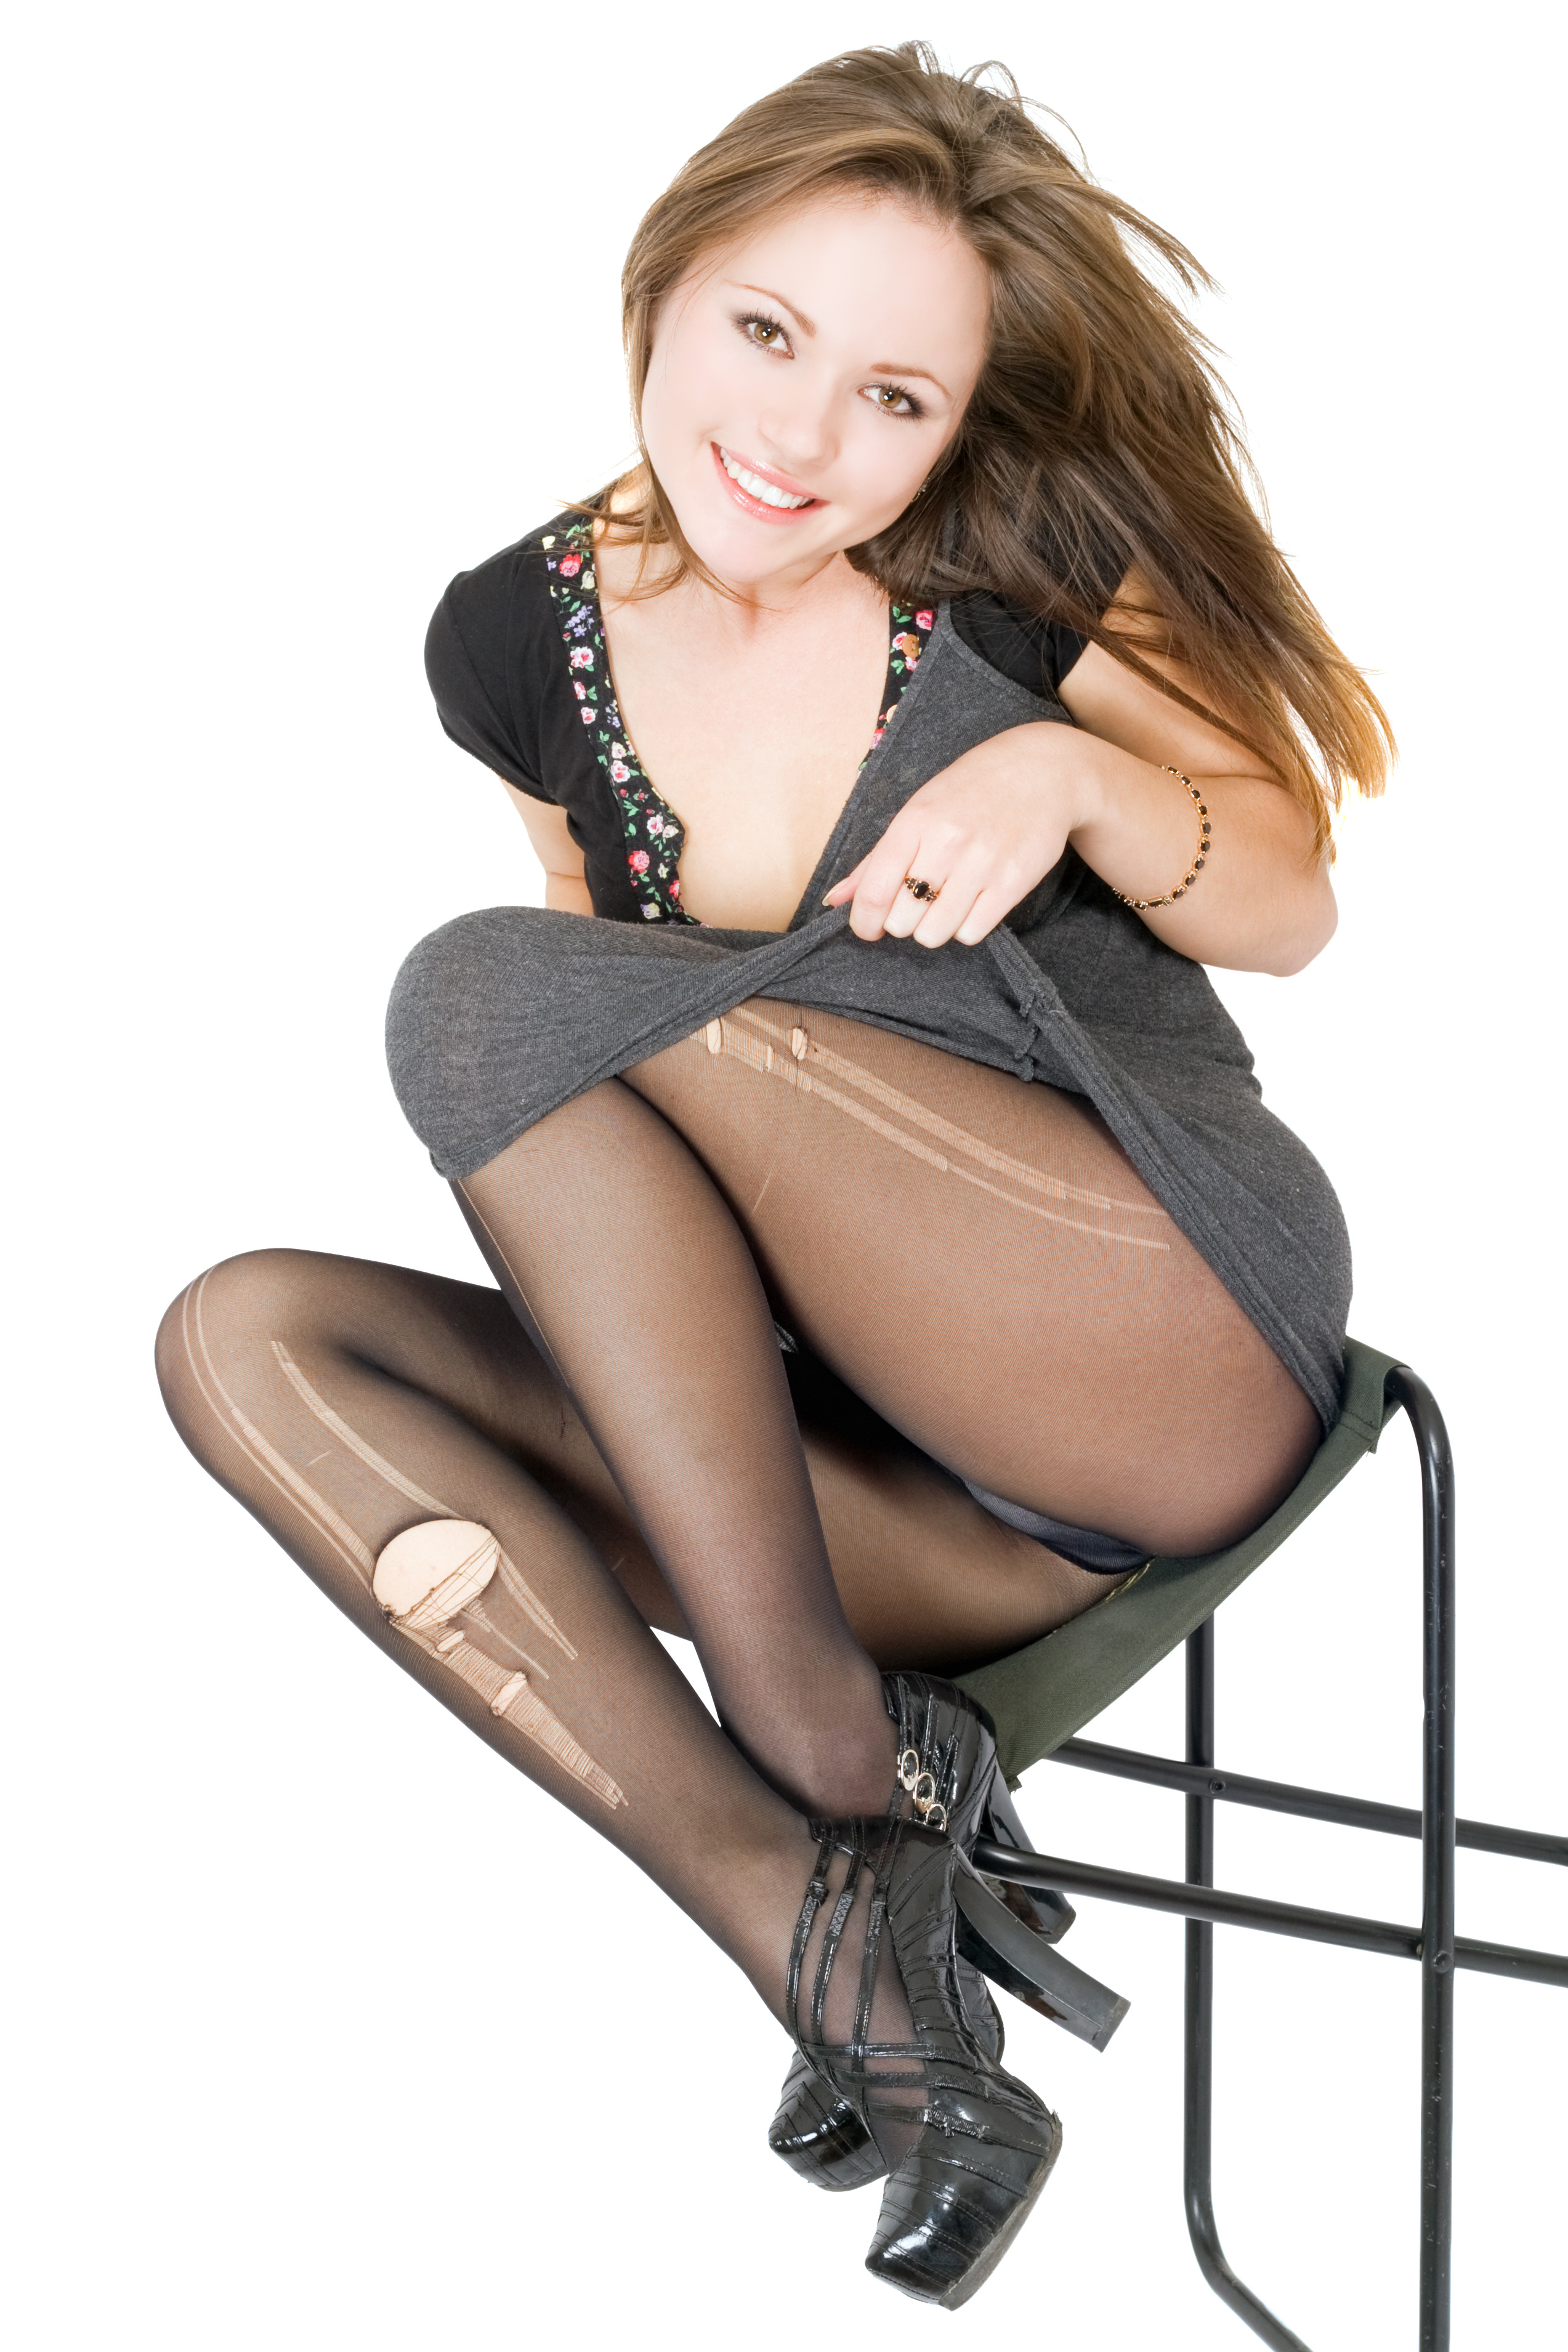 Woman In Pantyhose Is 52